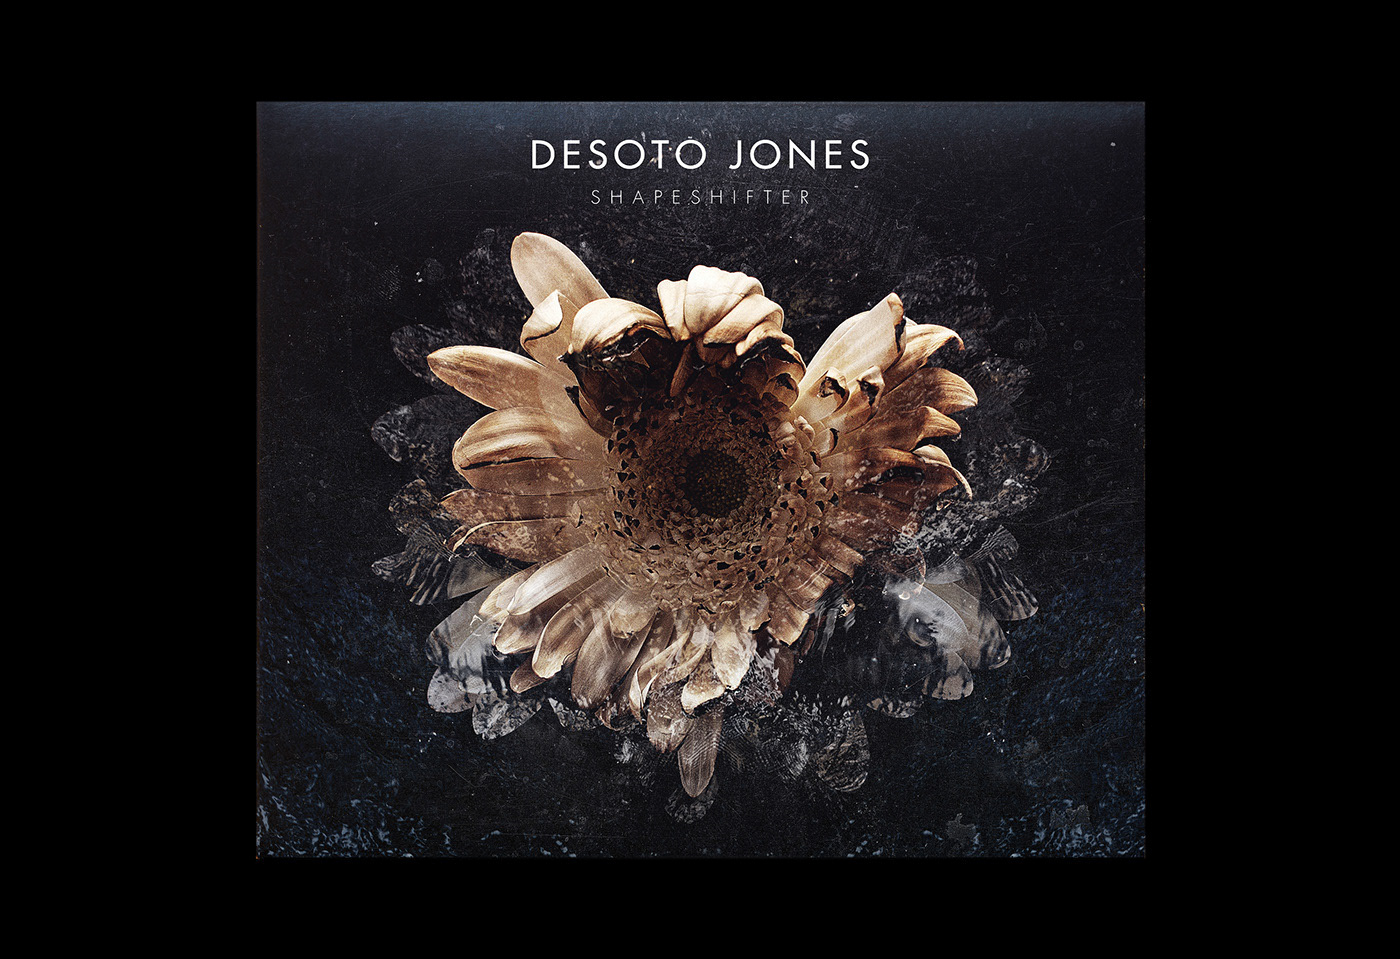 Desoto Jones / Shapeshifter